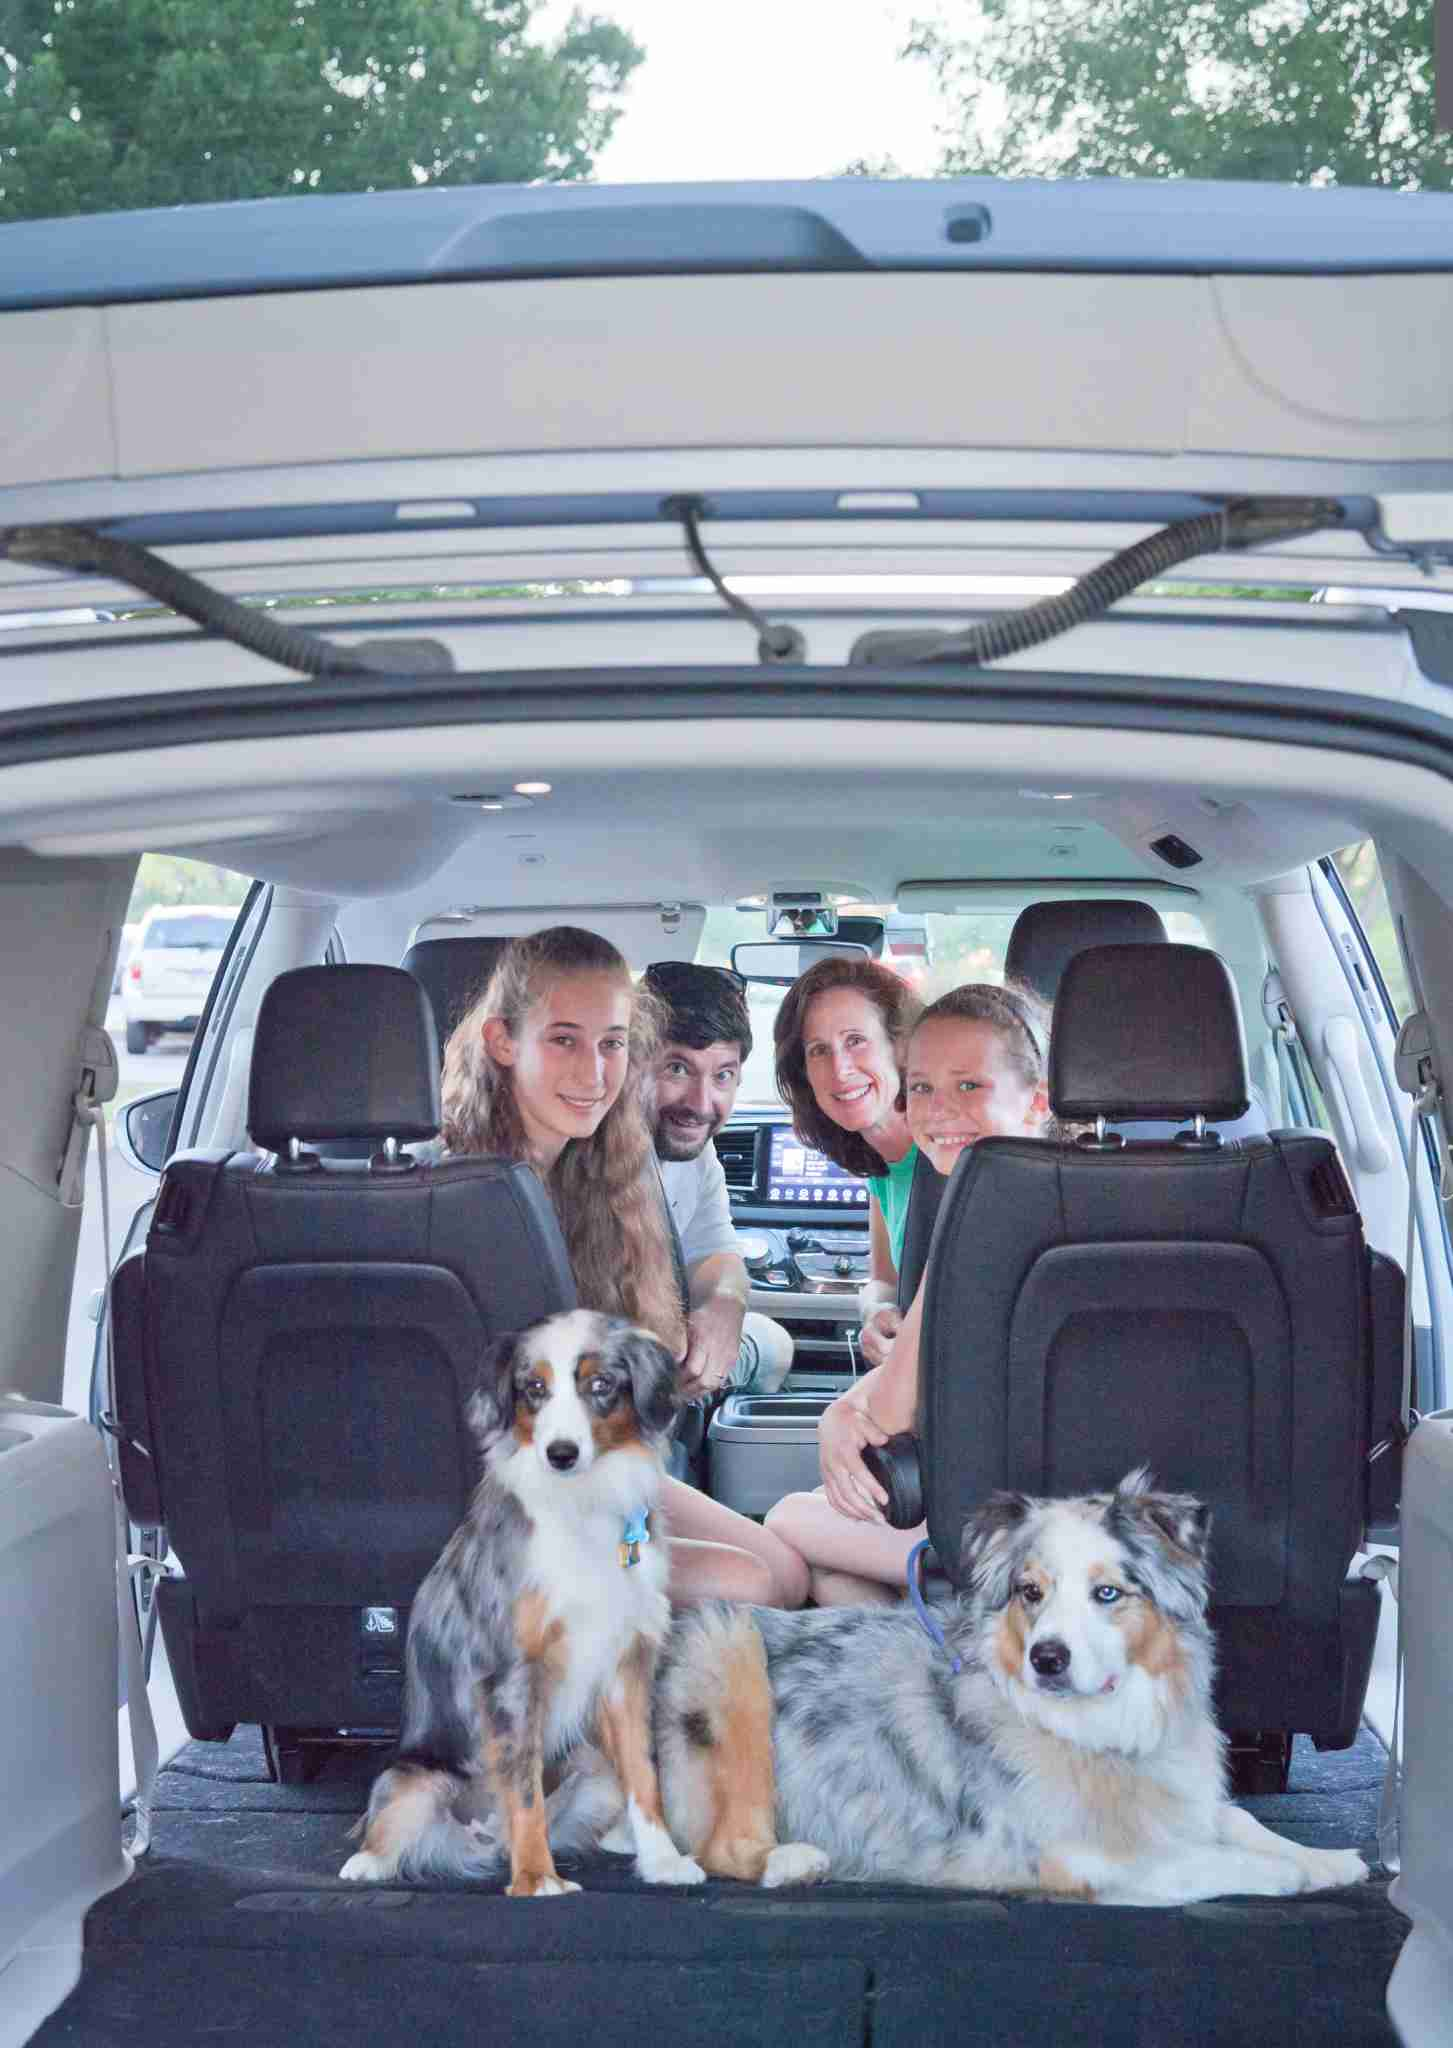 The family loaded up and ready for an adventure (Photo by Andrea Bacle Photography)